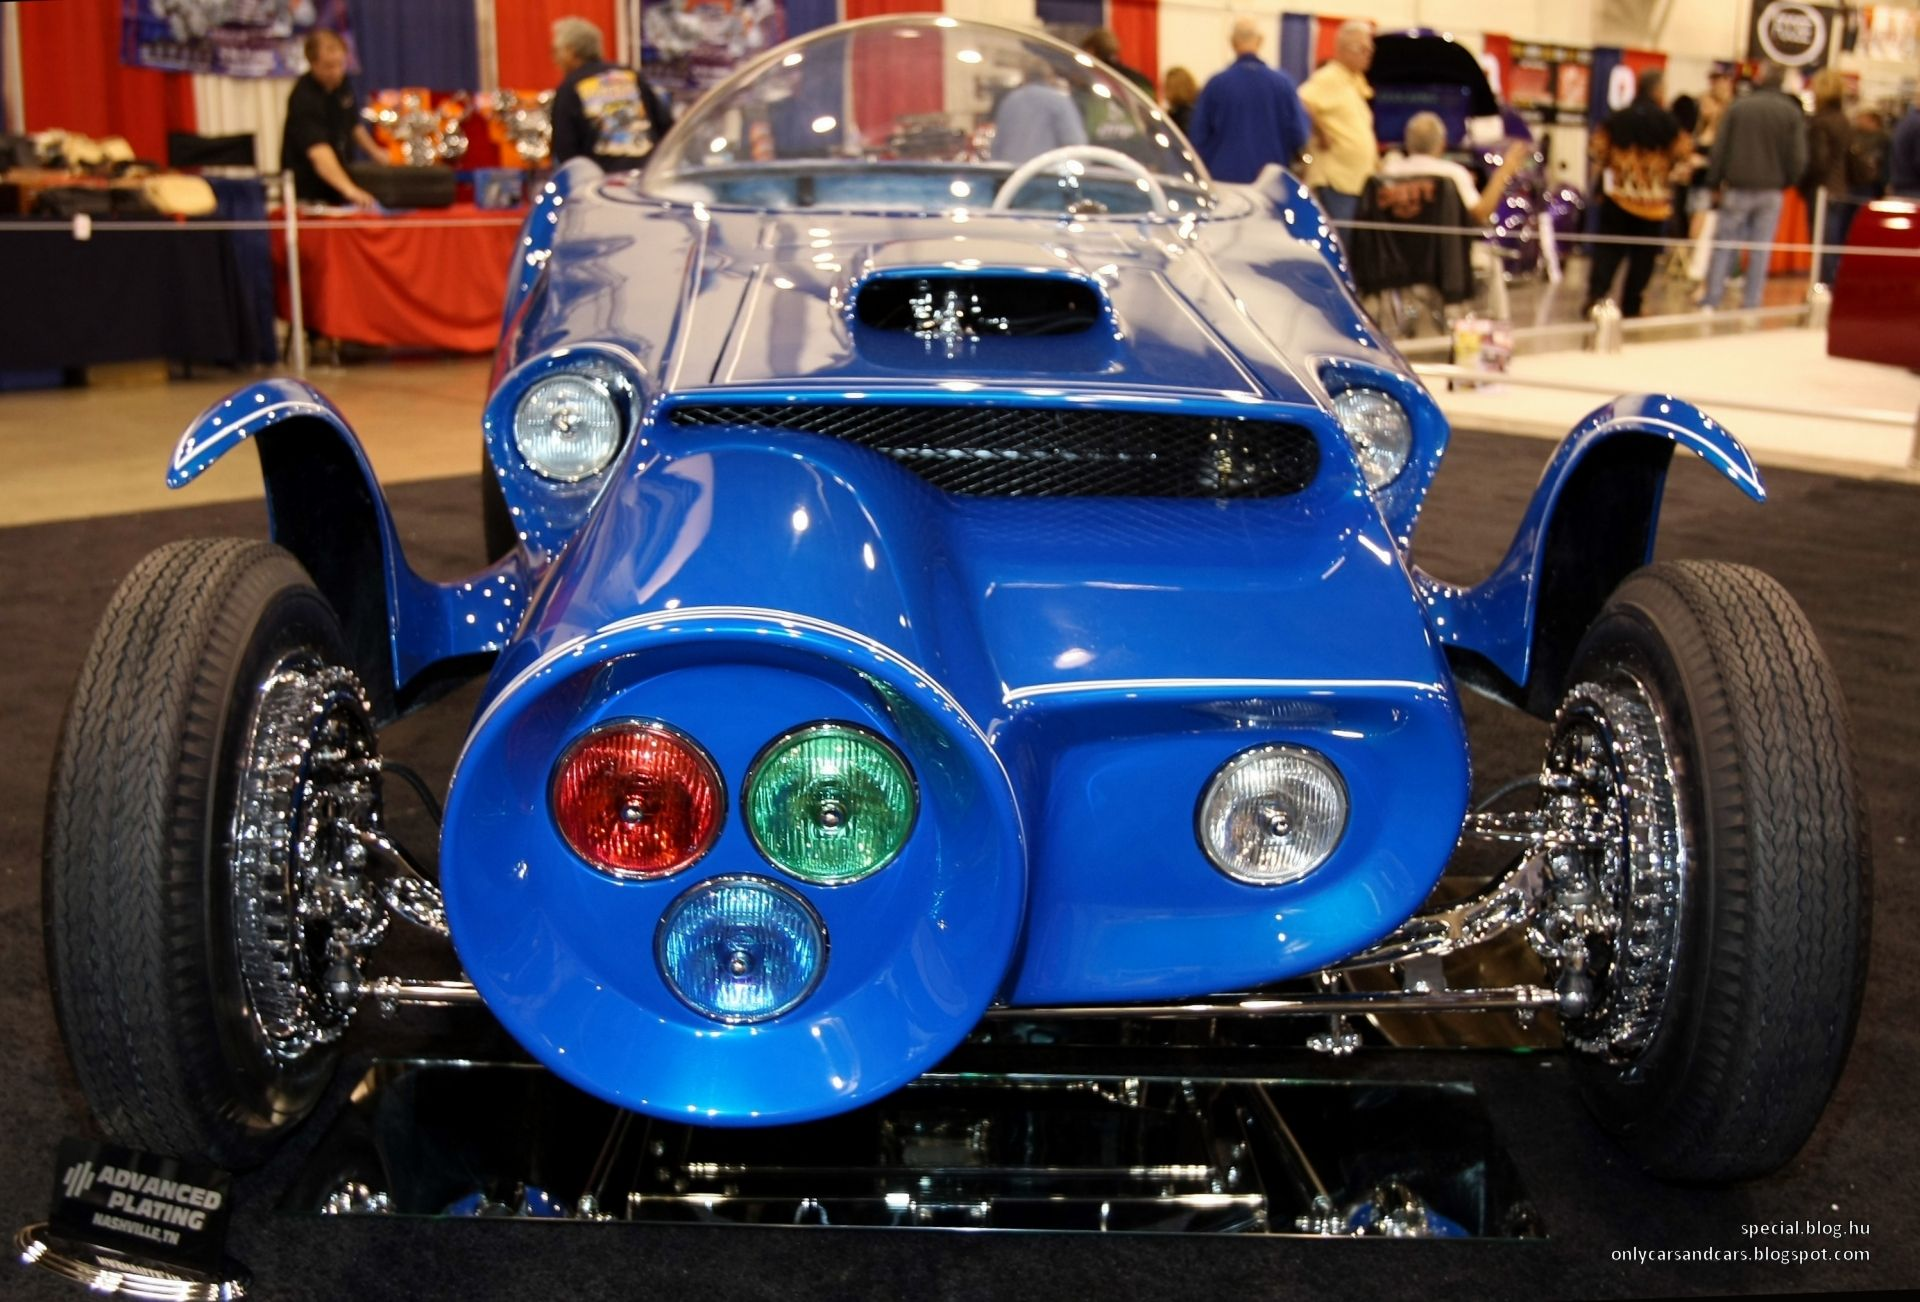 Orbitron by Ed Roth   Only cars and cars